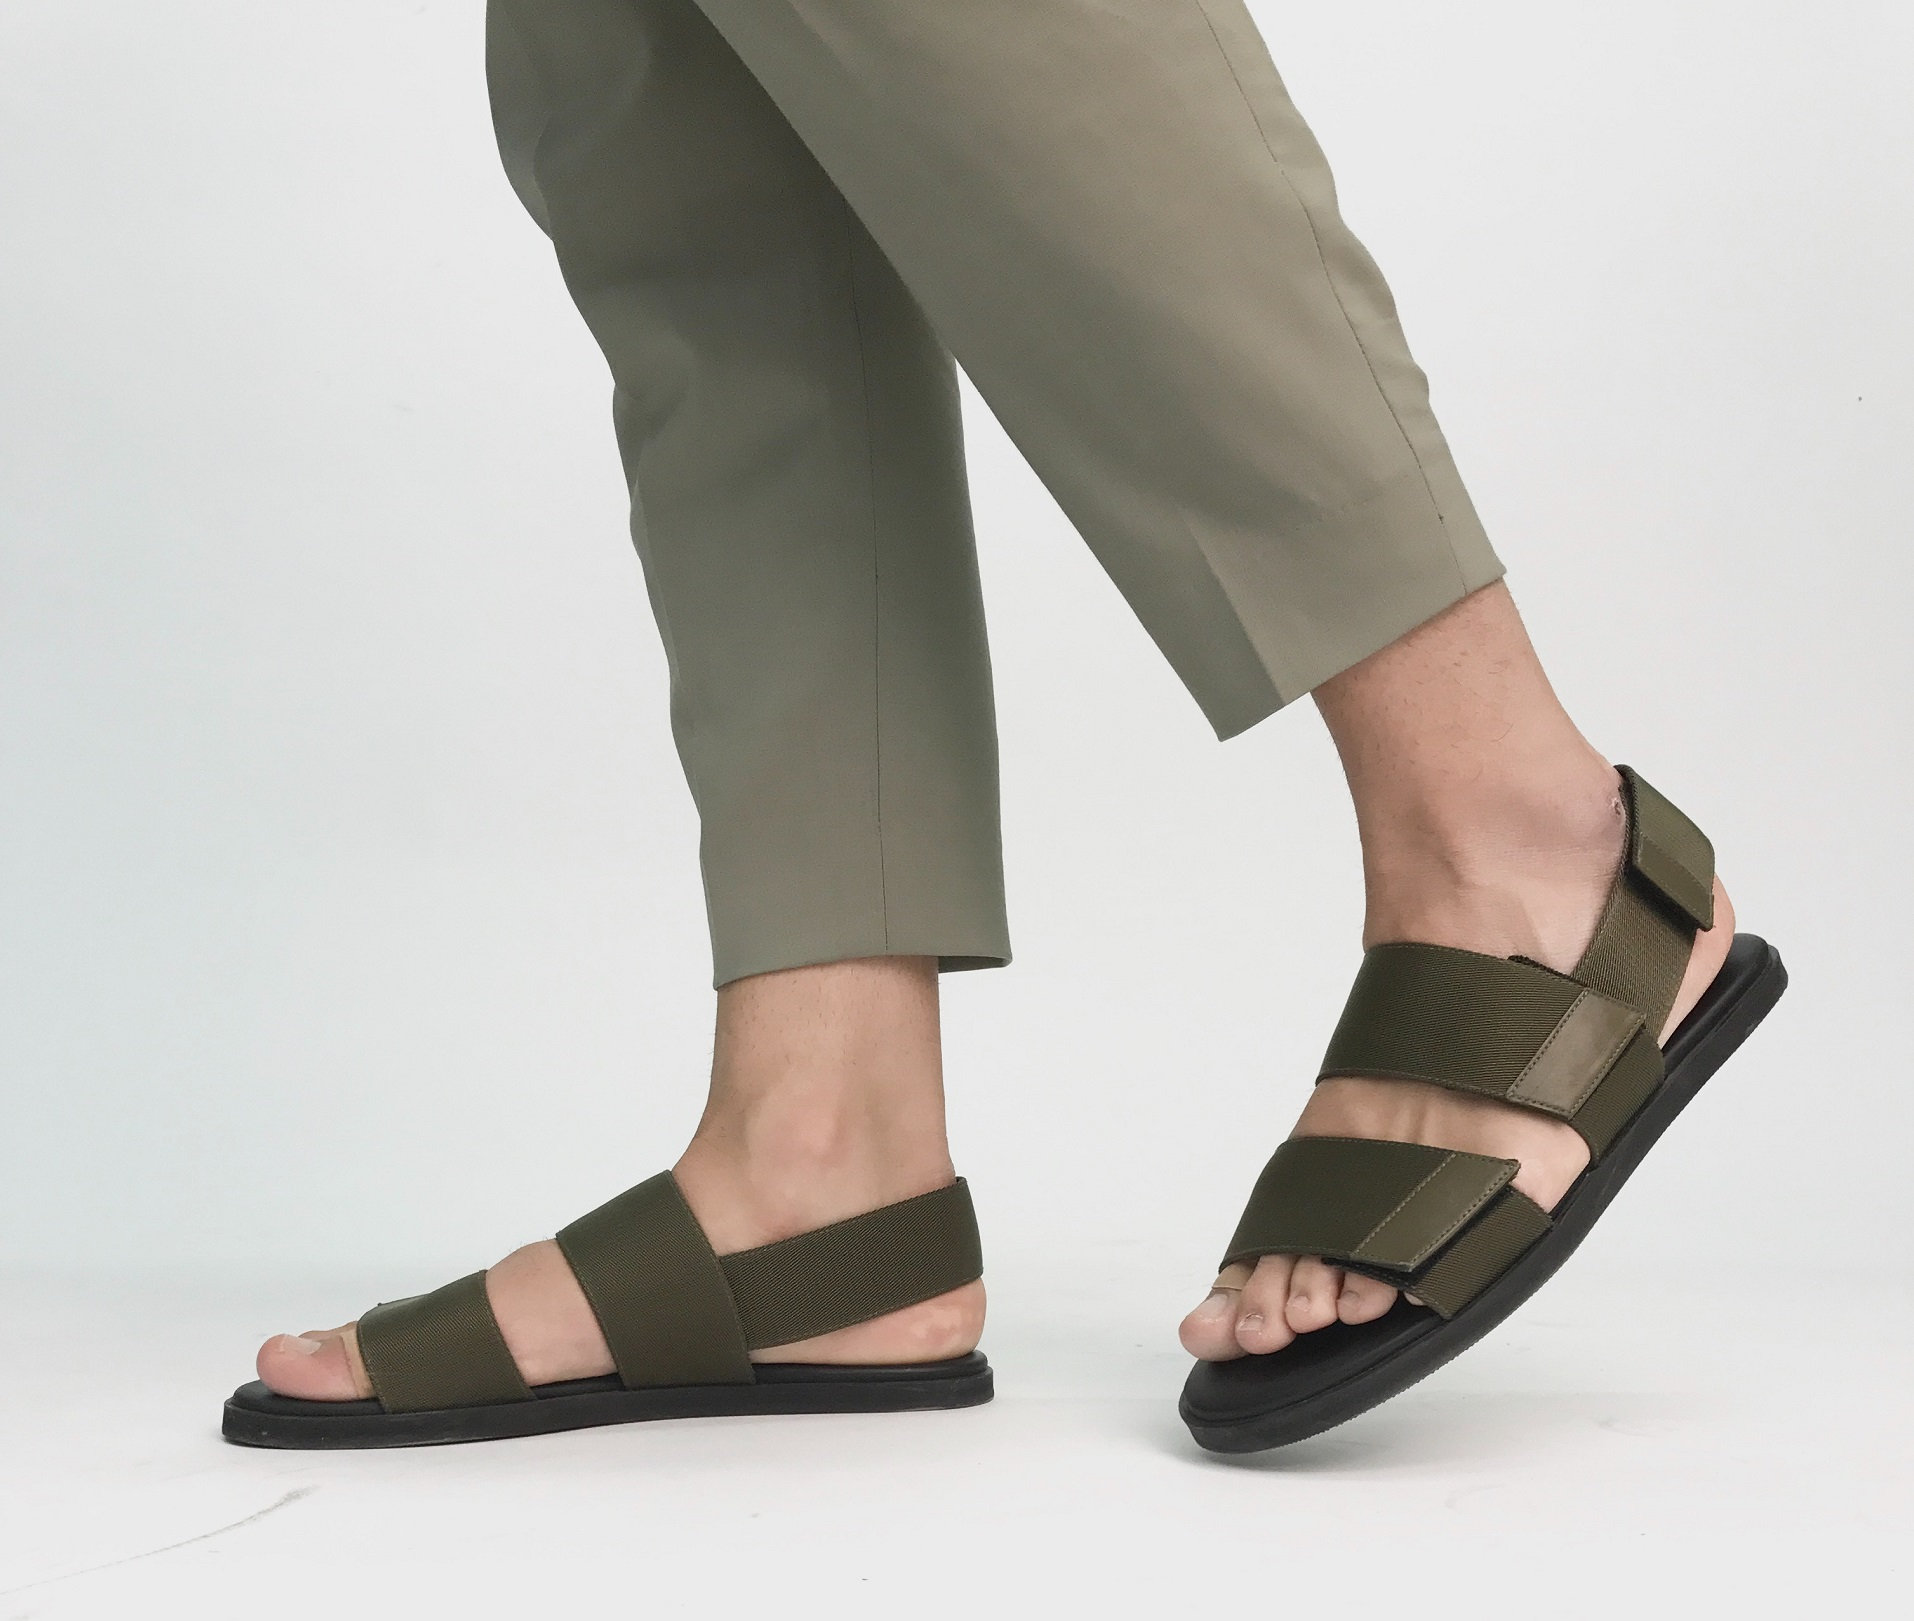 Sandals are a good option for men.